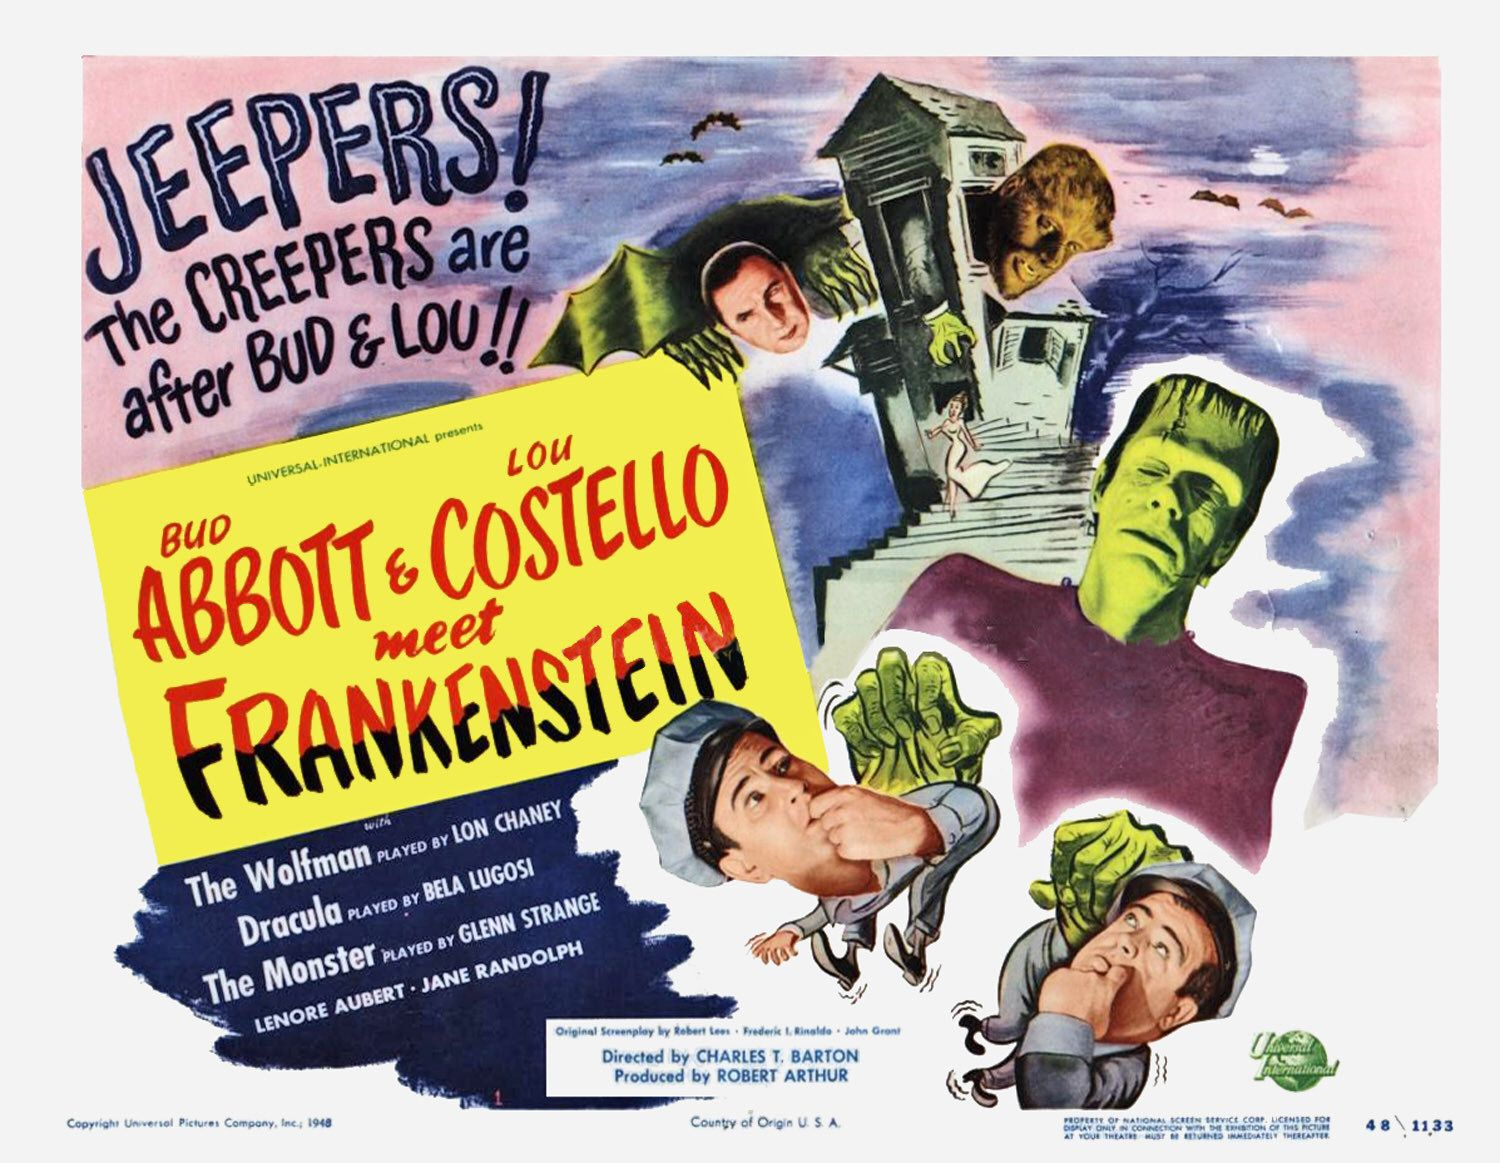 Bud Abbott and Lou Costello meet Frankenstein (1948)